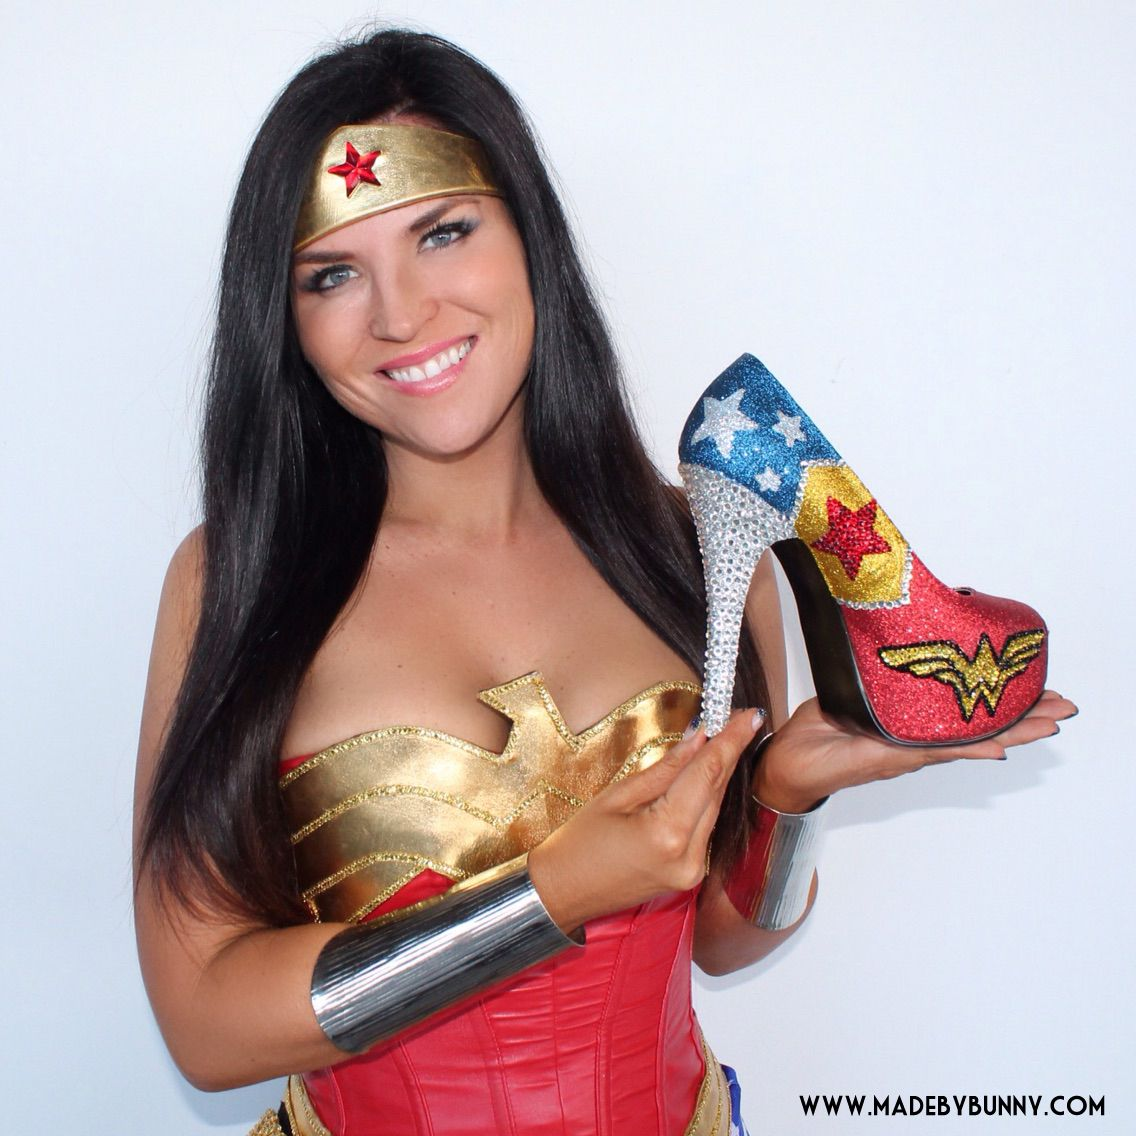 Wonder Woman Pink Cosplay: Sparkly Wonder Woman Comic Book Heels Made With Glitter